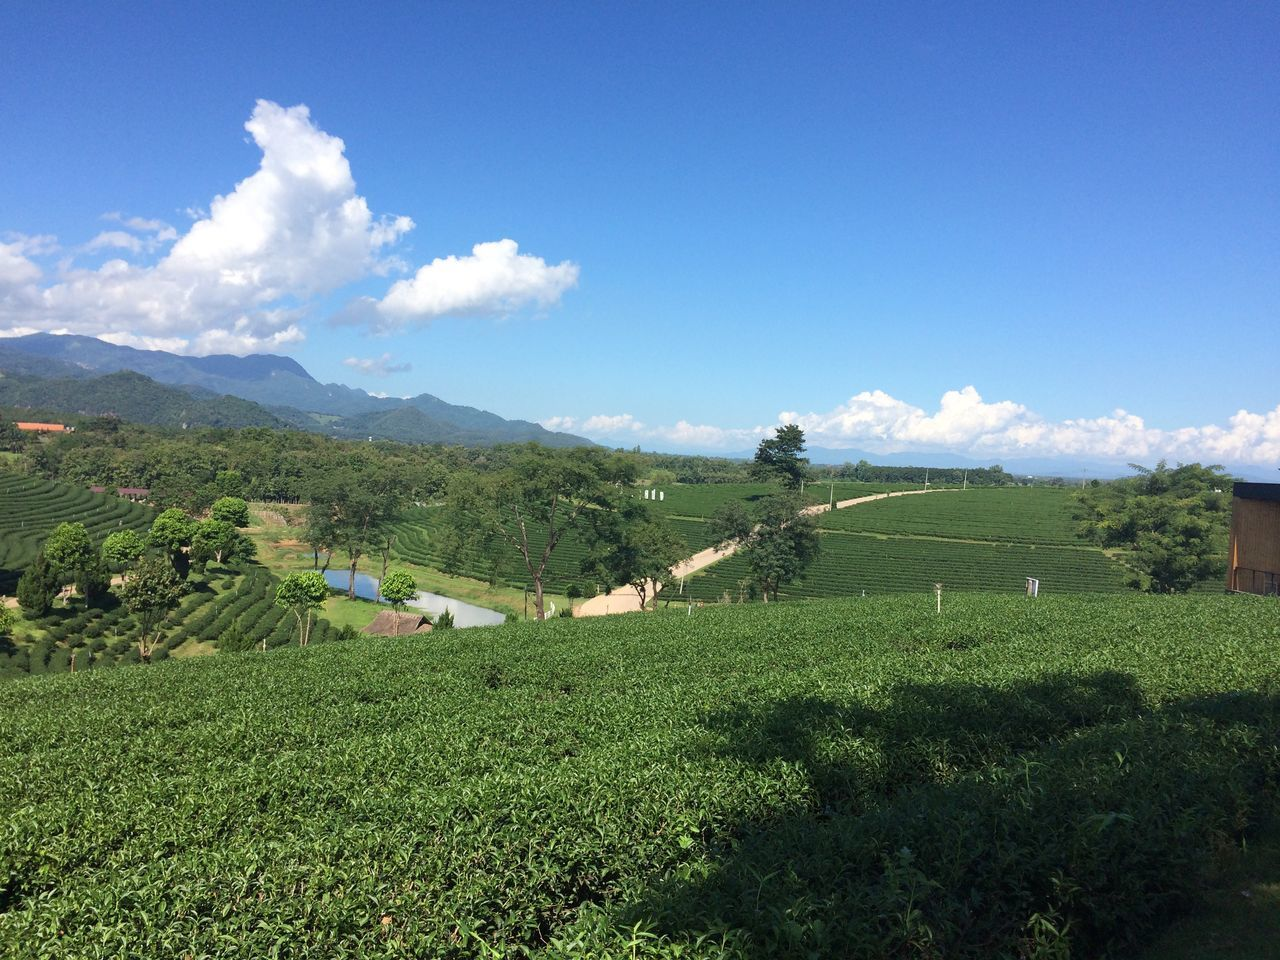 Agriculture Farm Field Mountain Day Landscape Sky Cultivated Land Crop  Nature Rural Scene Beauty In Nature Scenics Outdoors Growth Tranquil Scene Cloud - Sky Green Color No People Tranquility Tea Plant